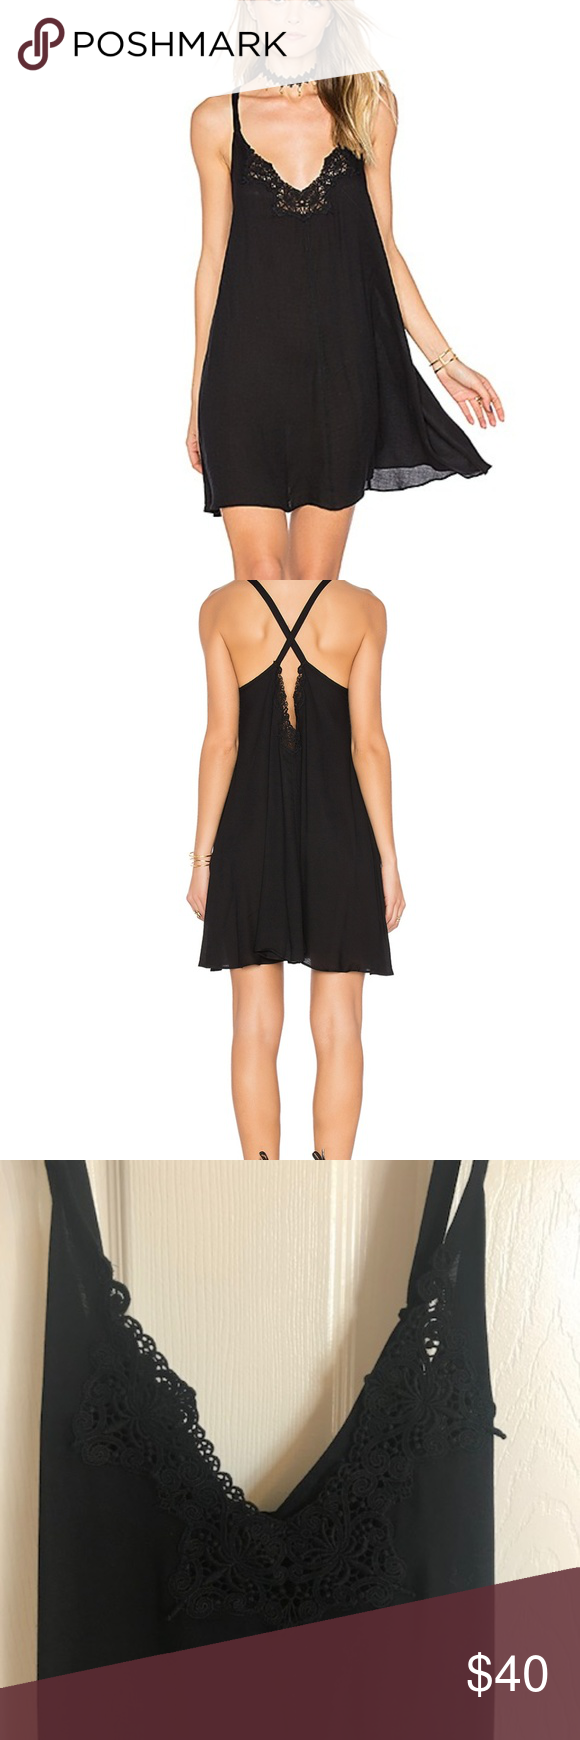 af755d000a4181 Free People Kendall Trapeze Slip Dress - Black New with tags